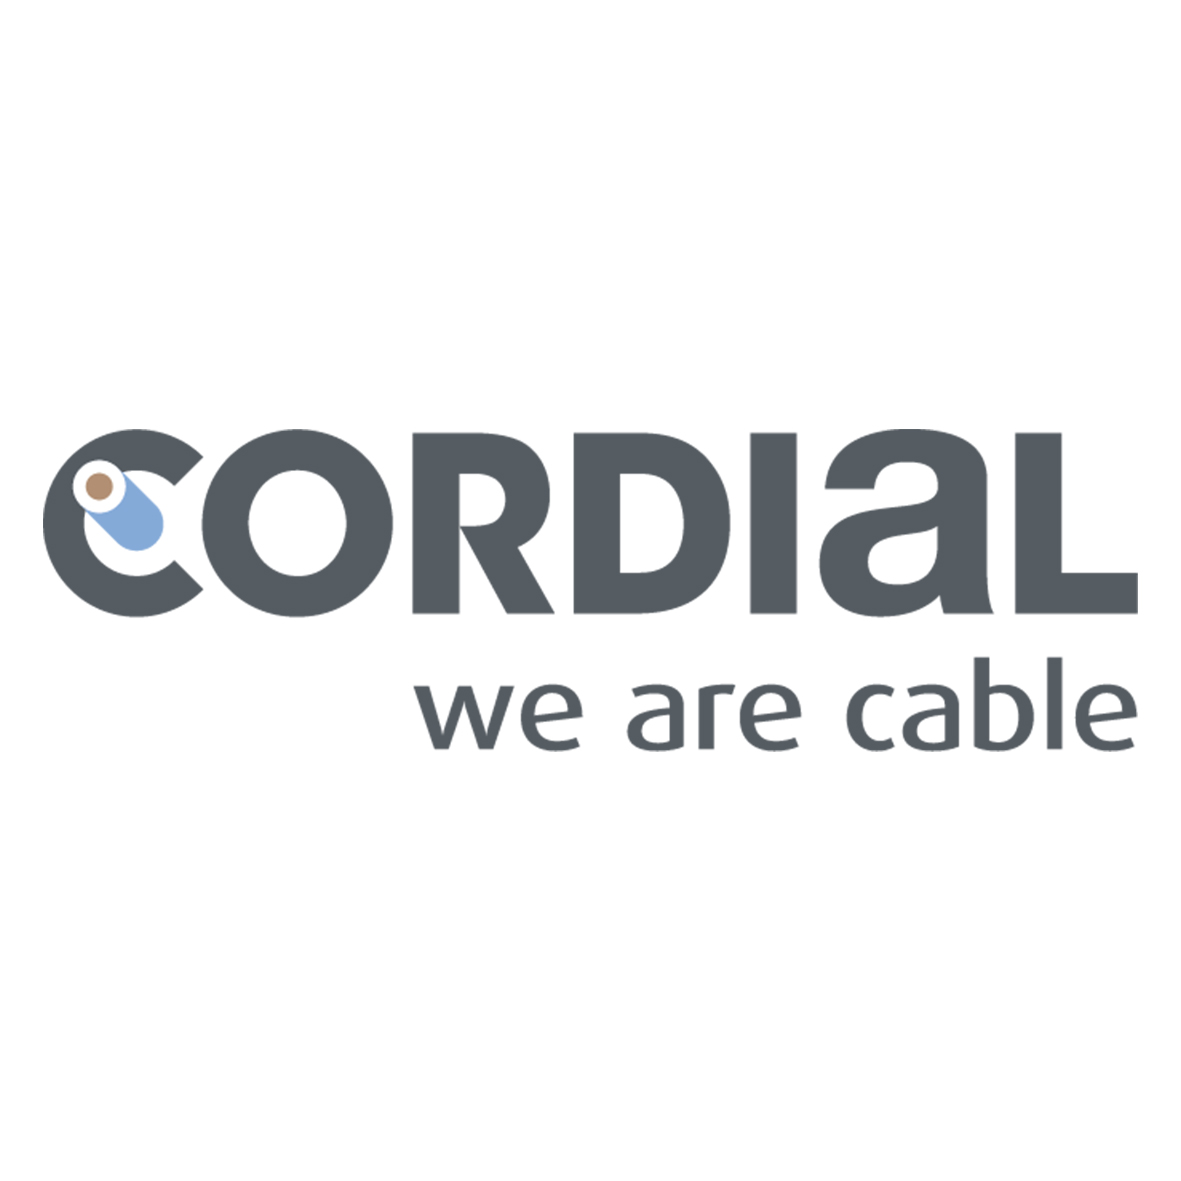 Cordial We Are Cable